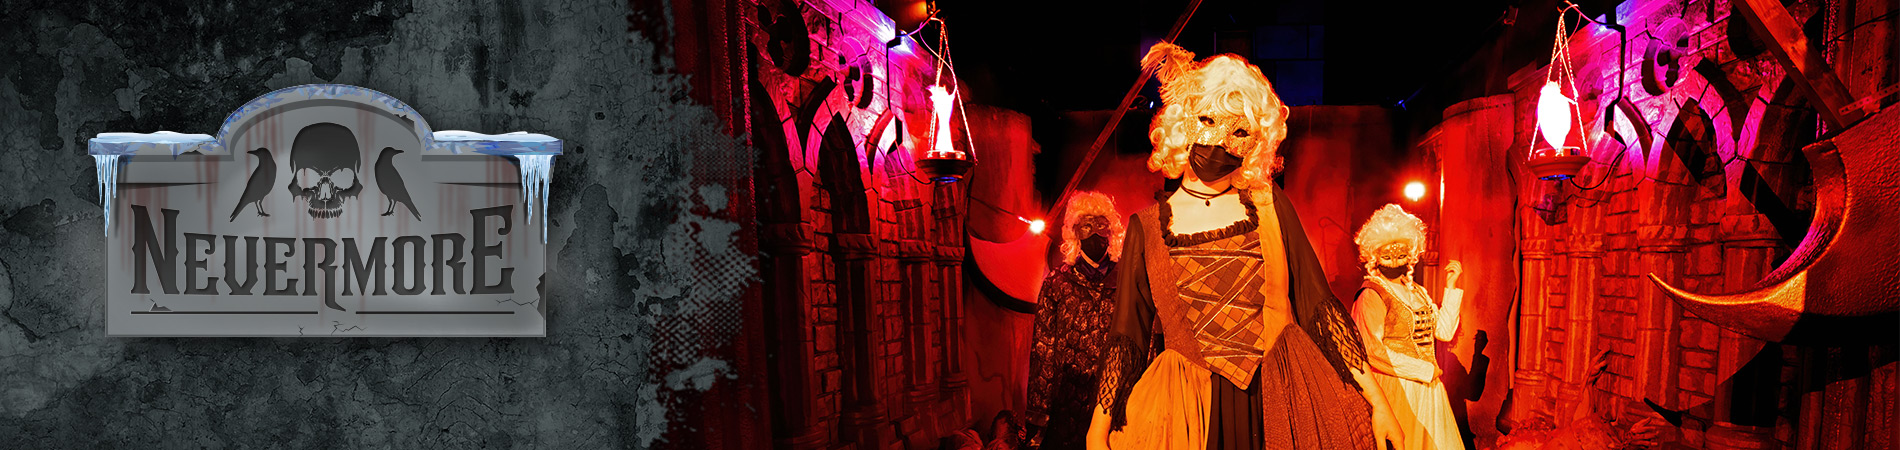 Nevermore Haunted House